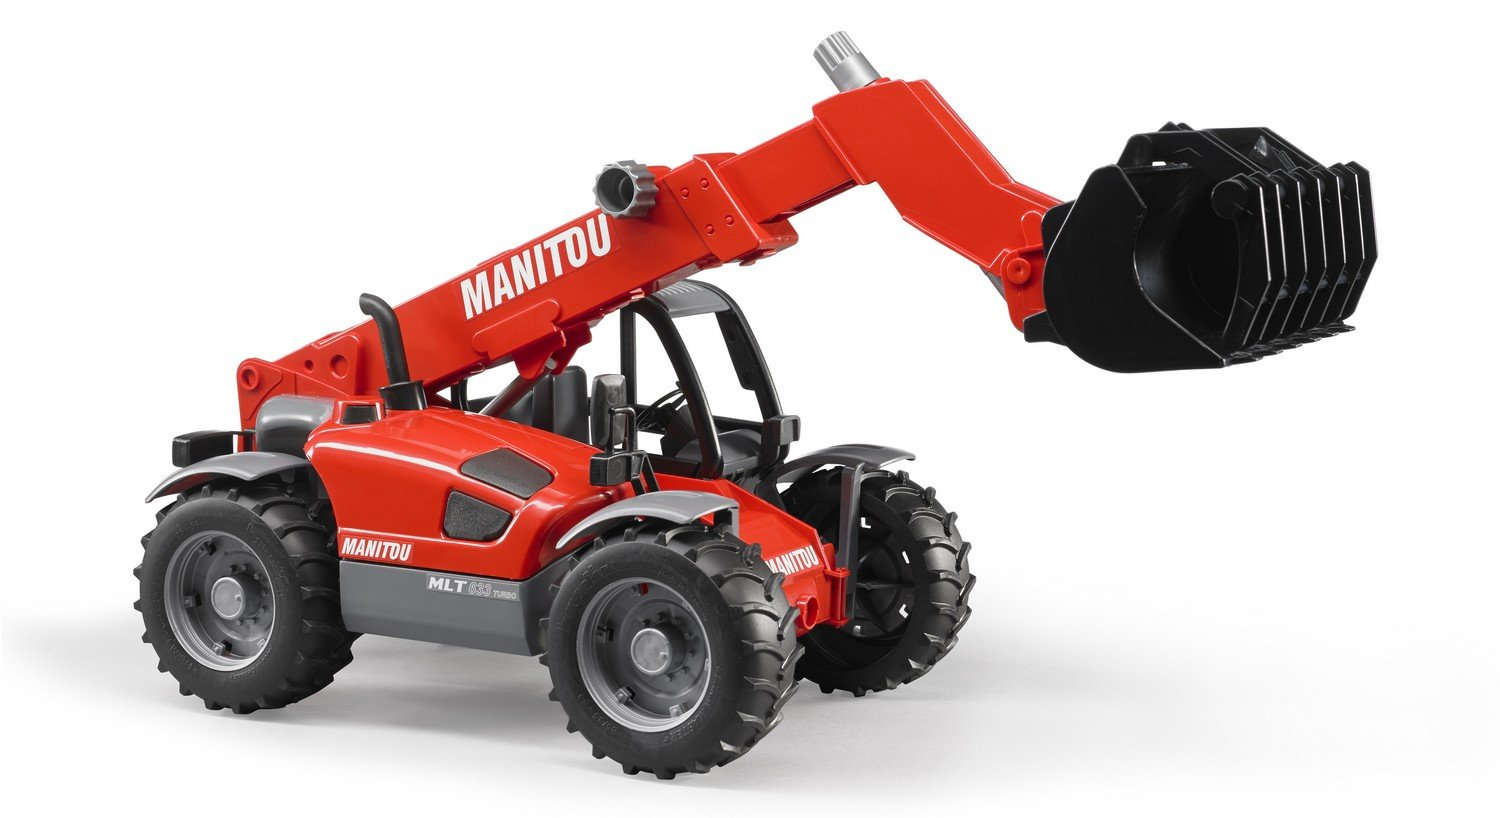 Manitou Mlt Manual